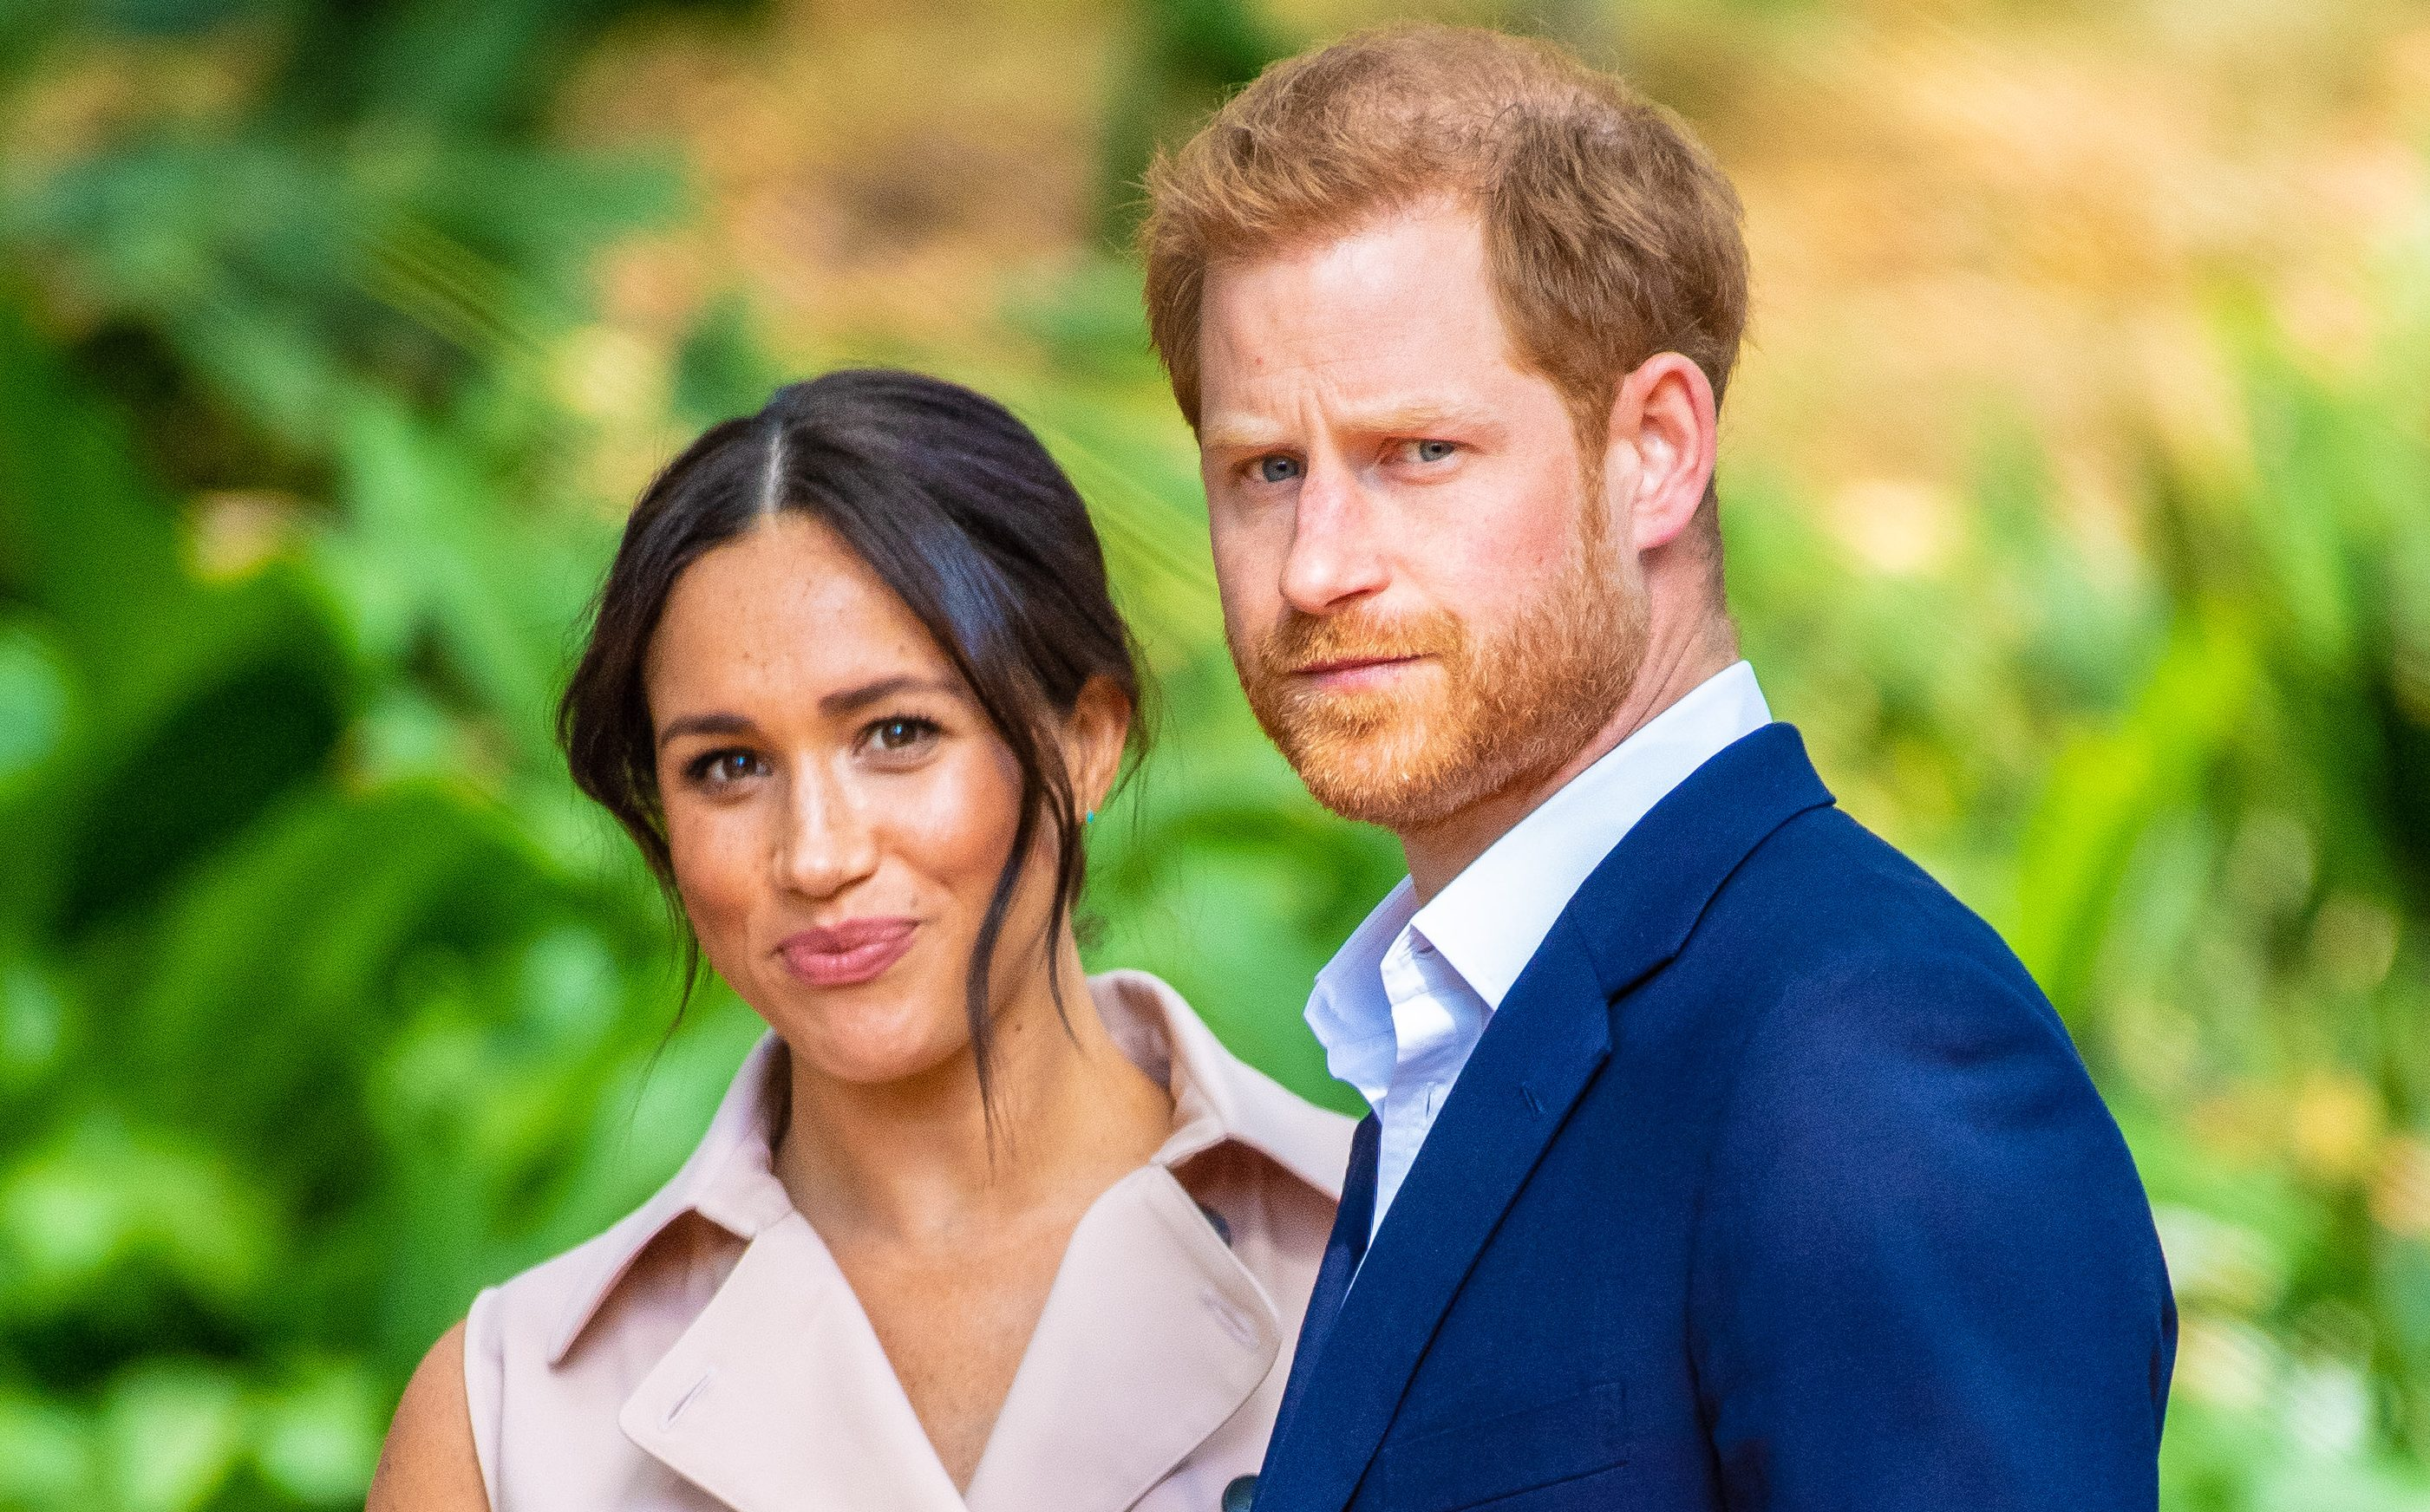 Meghan Markle and Prince Harry 'to fund new life by launching film company'